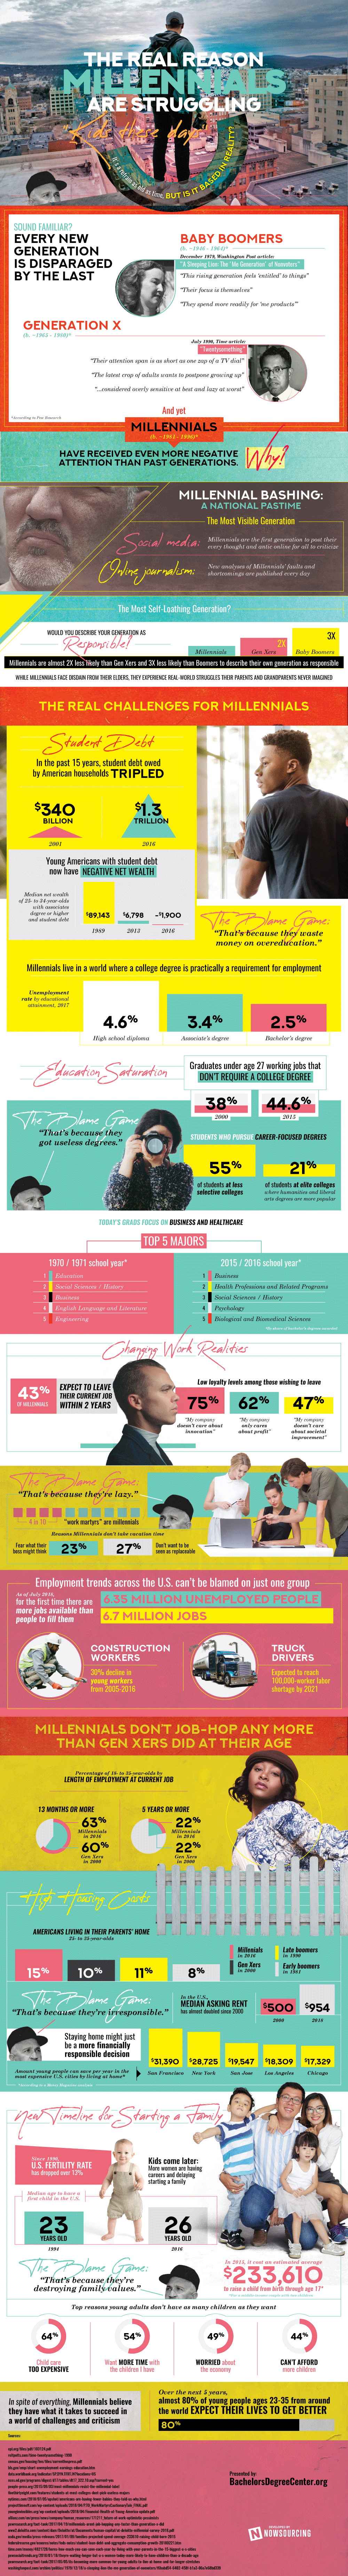 The Real Reasons Millennials Are Struggling [Infographic] 1